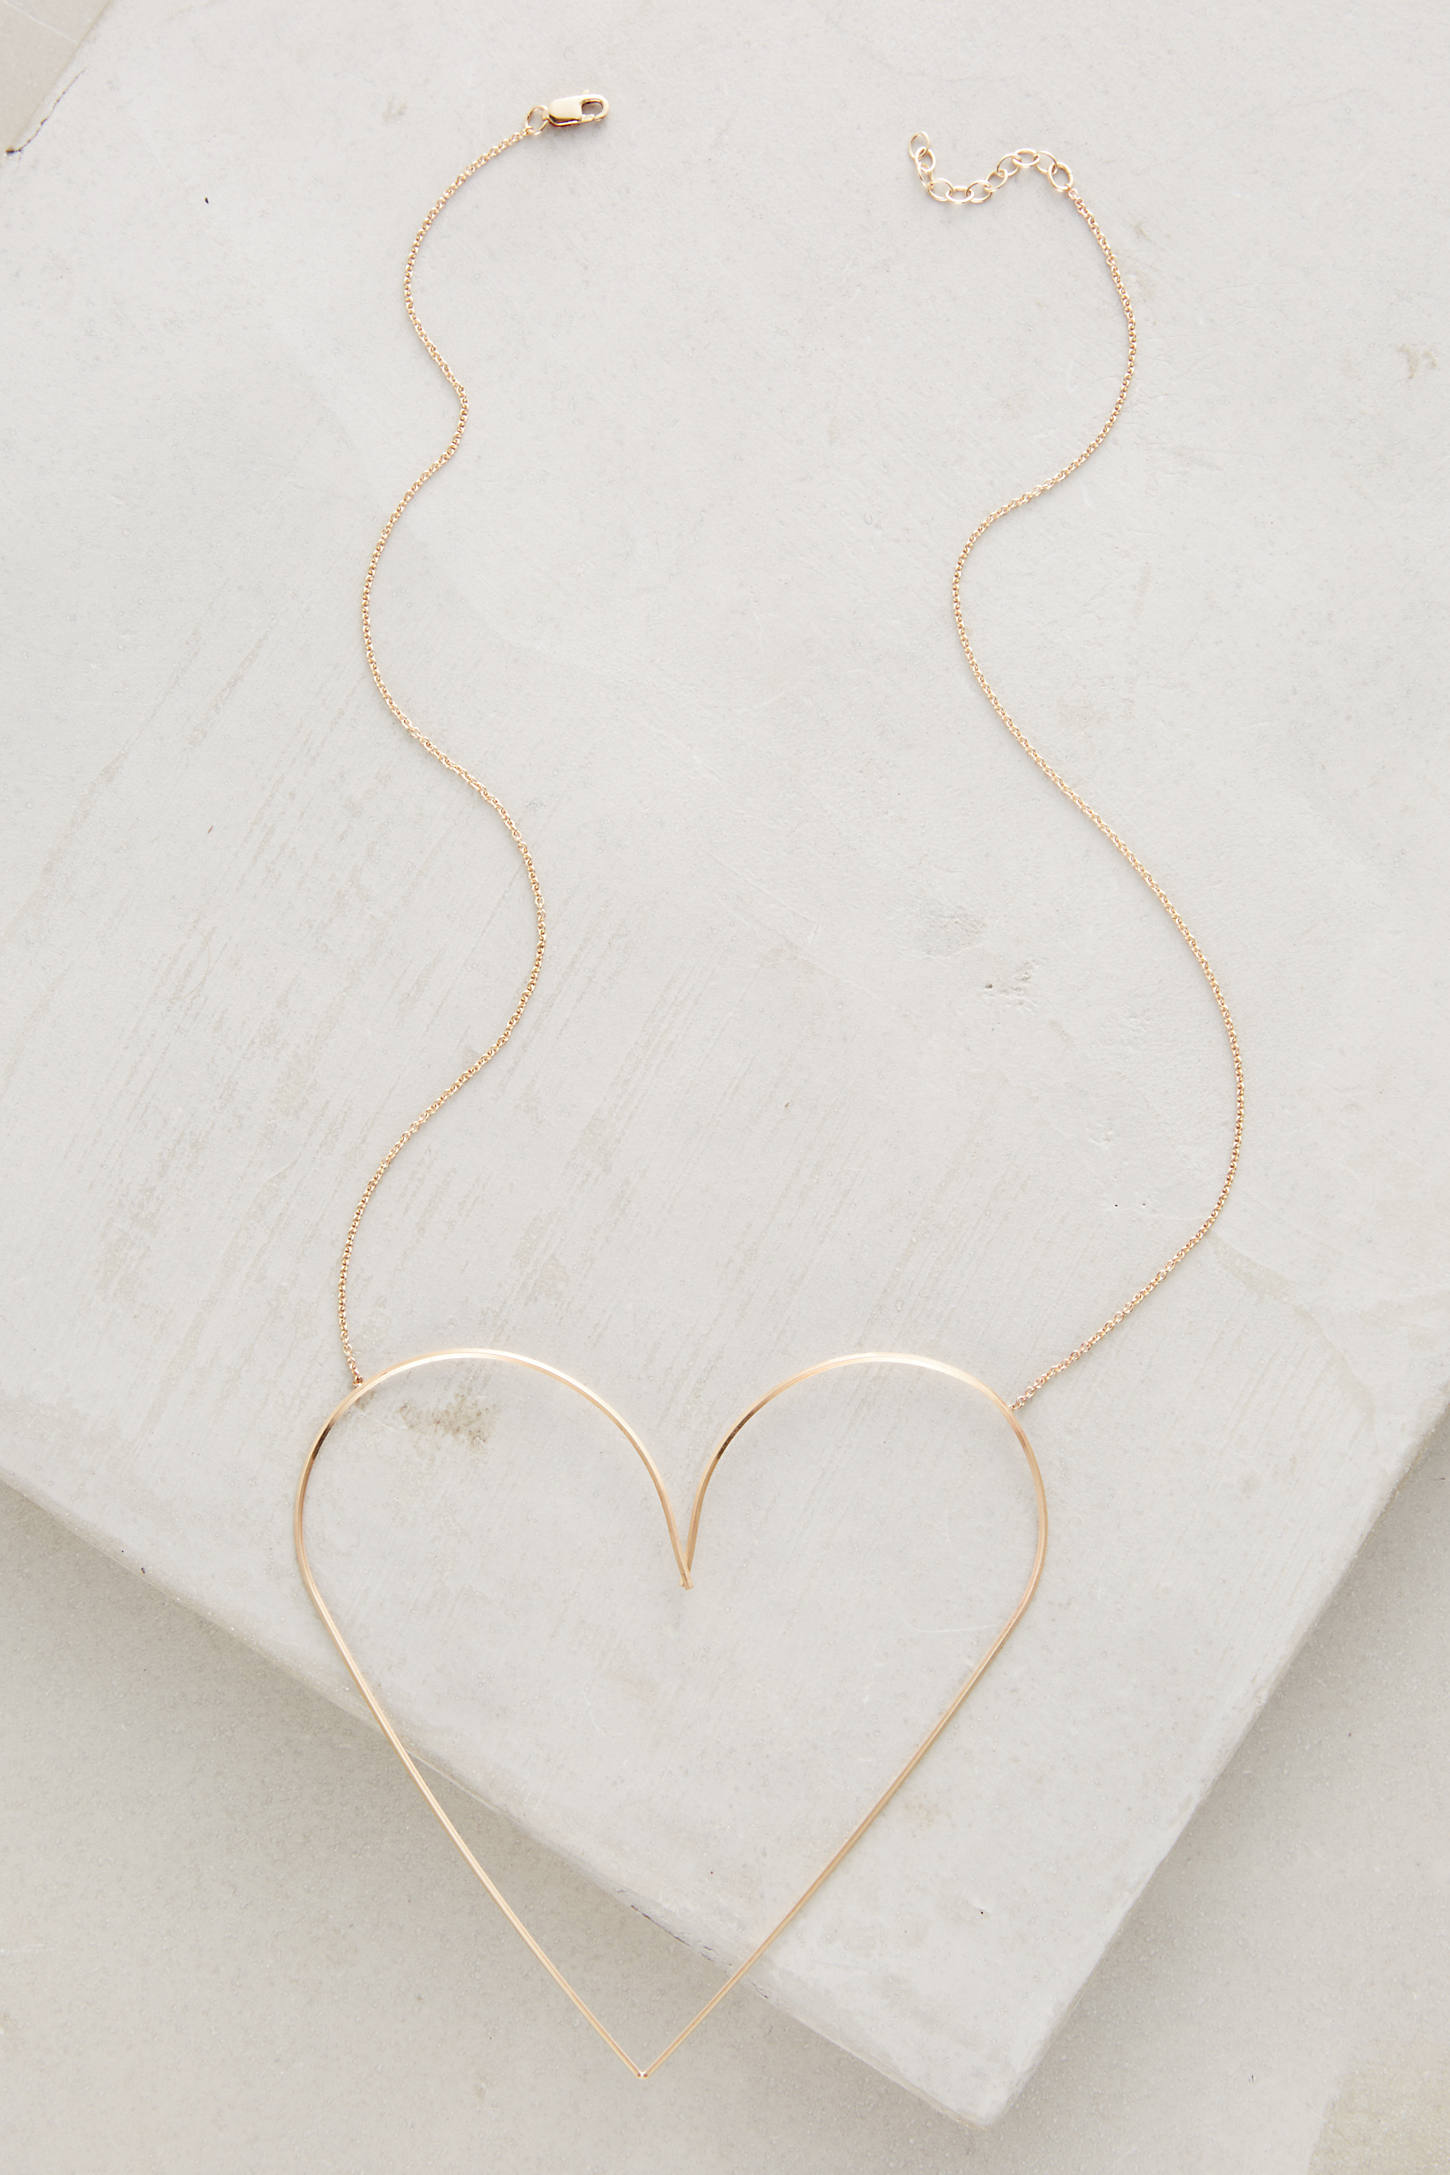 Gilded Heart Necklace